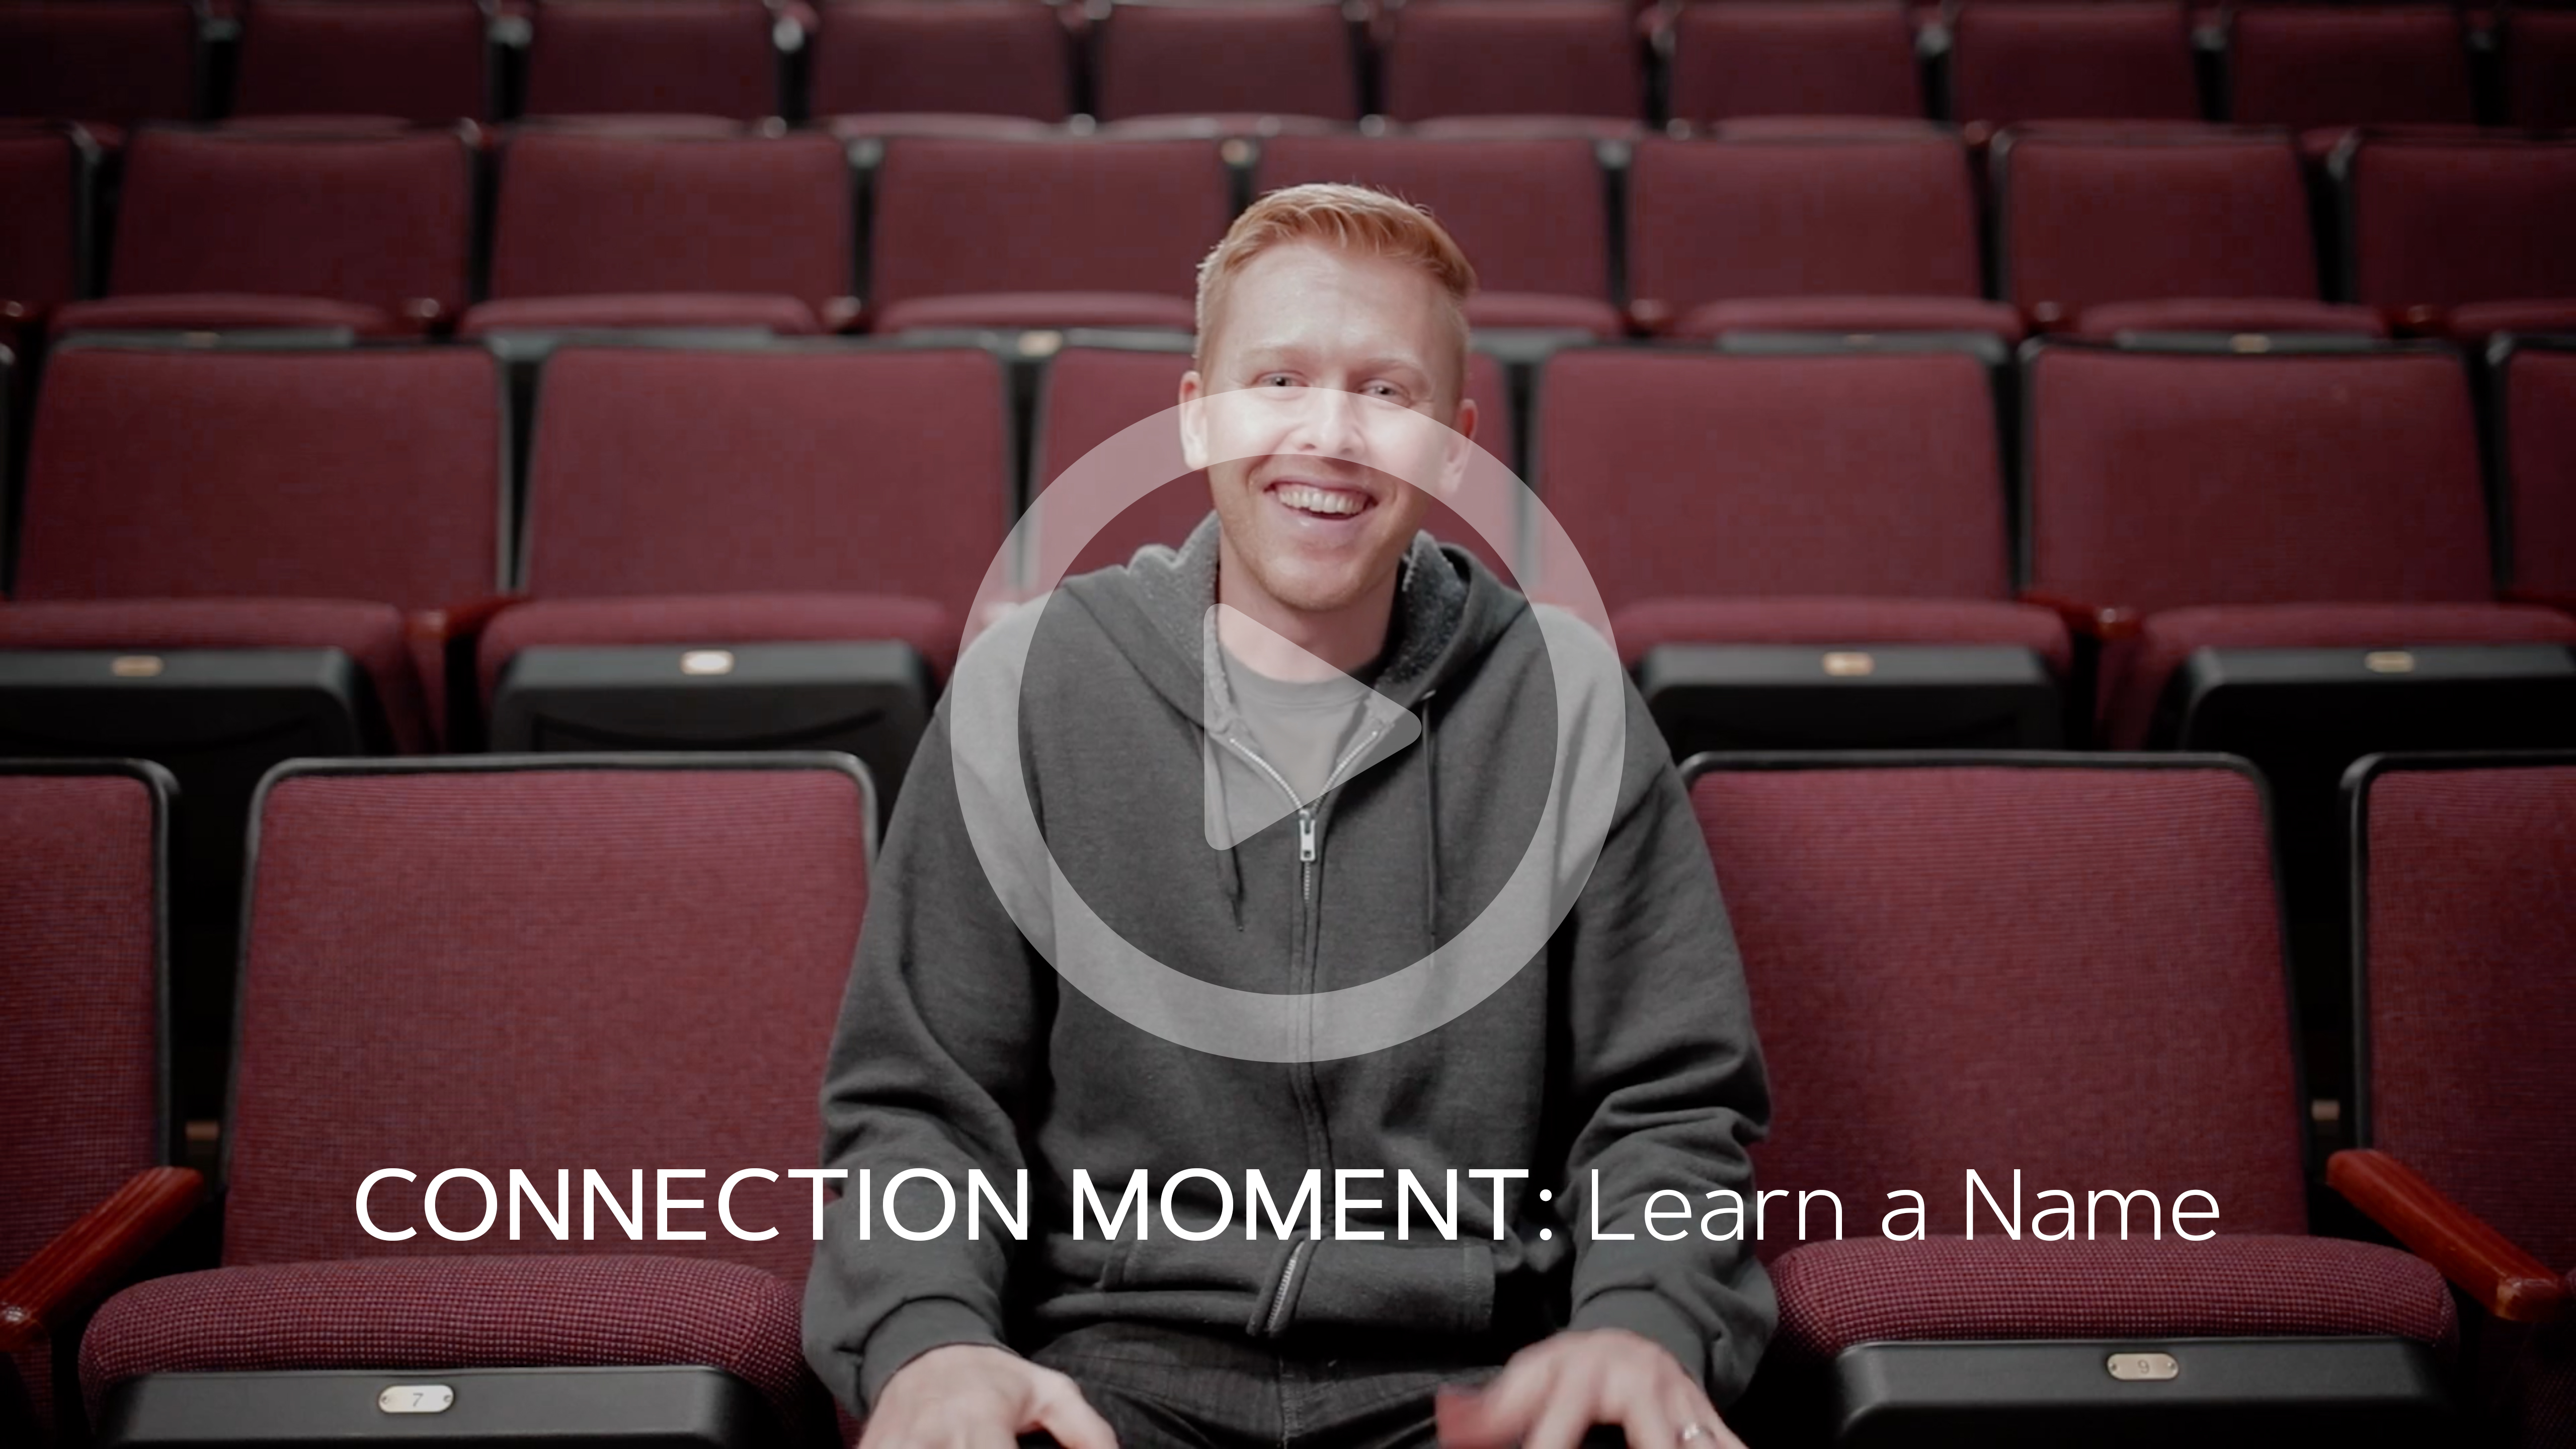 Connection Moment: Learn a Name